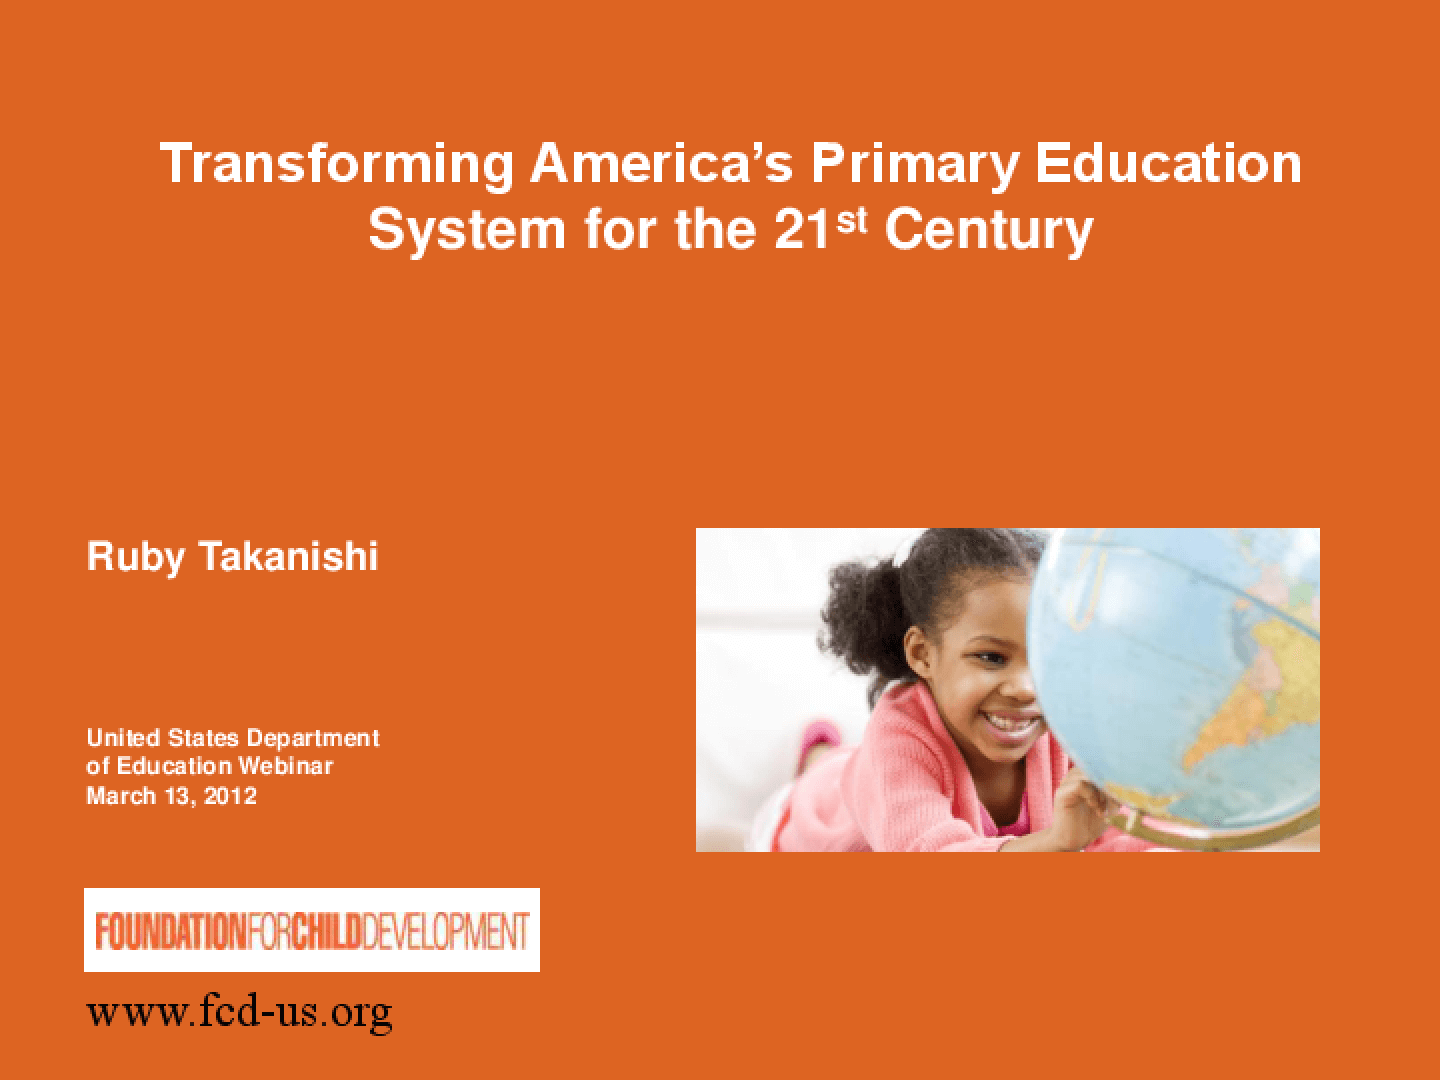 Transforming America's Primary Education System for the 21st Century